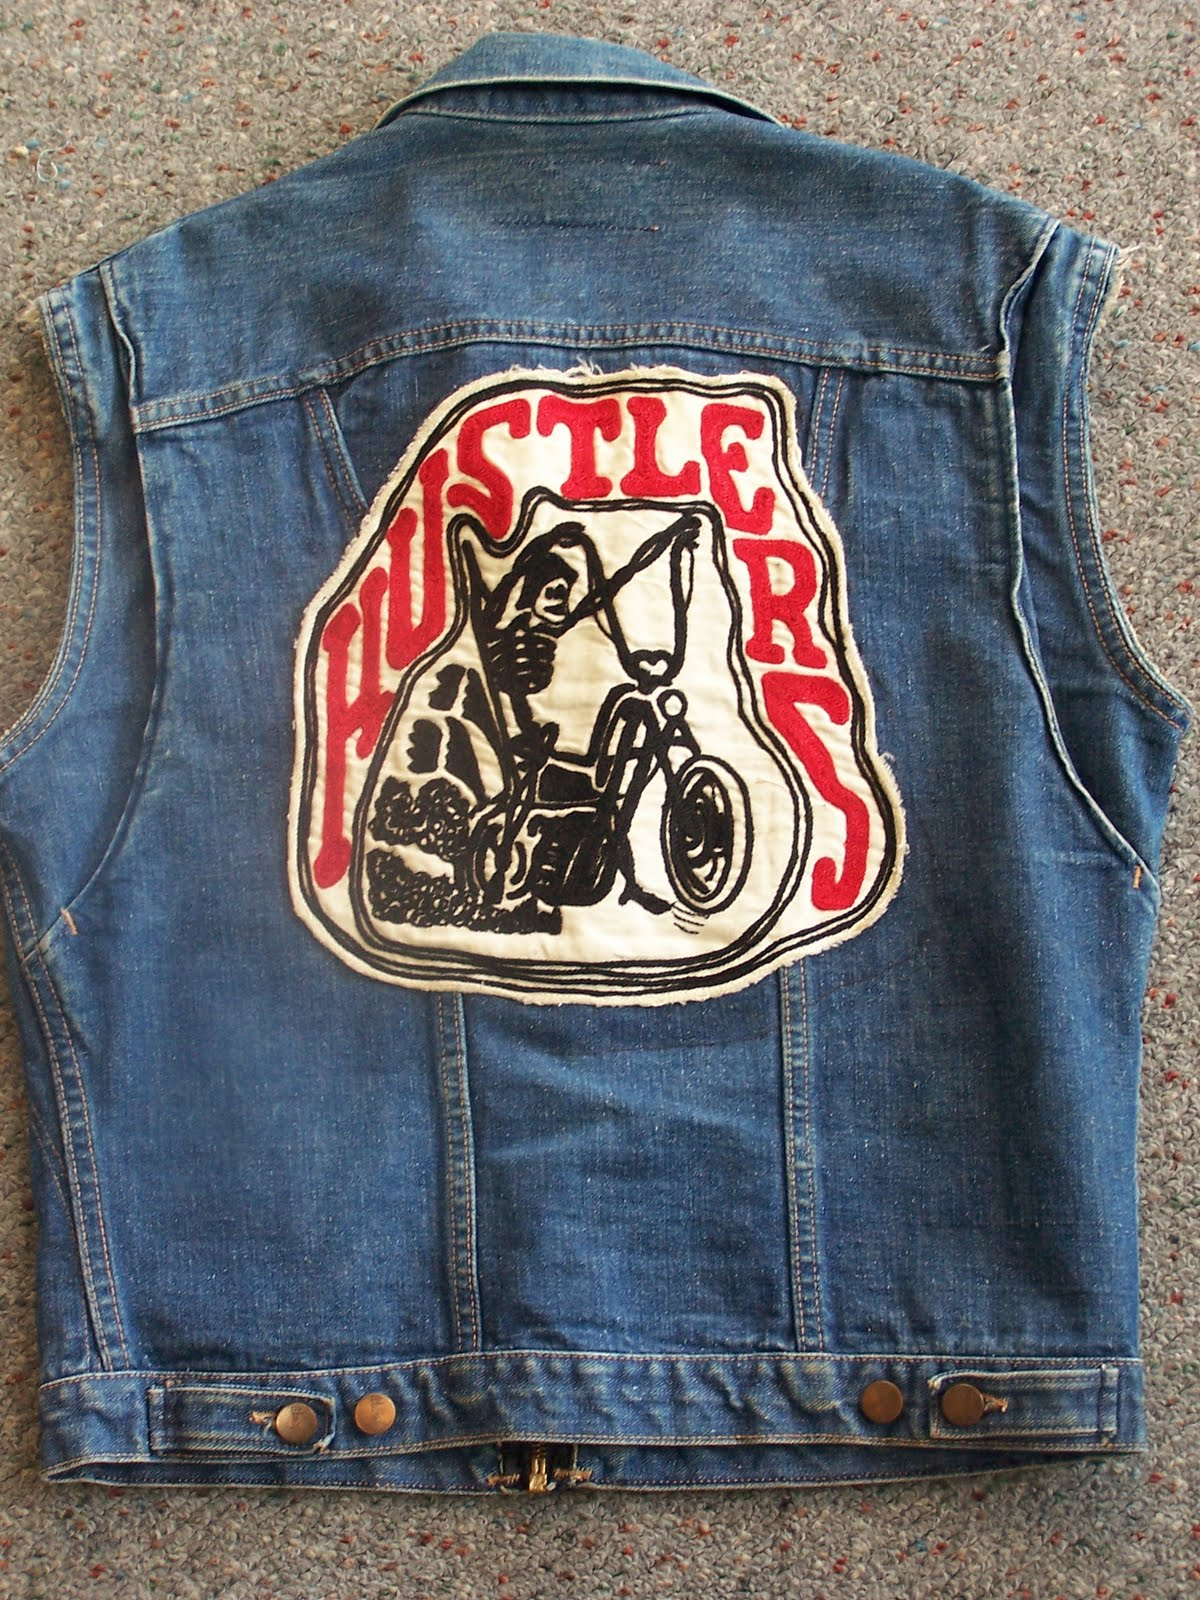 Special Lord Blog Street Gang Jackets And Cards And Biker